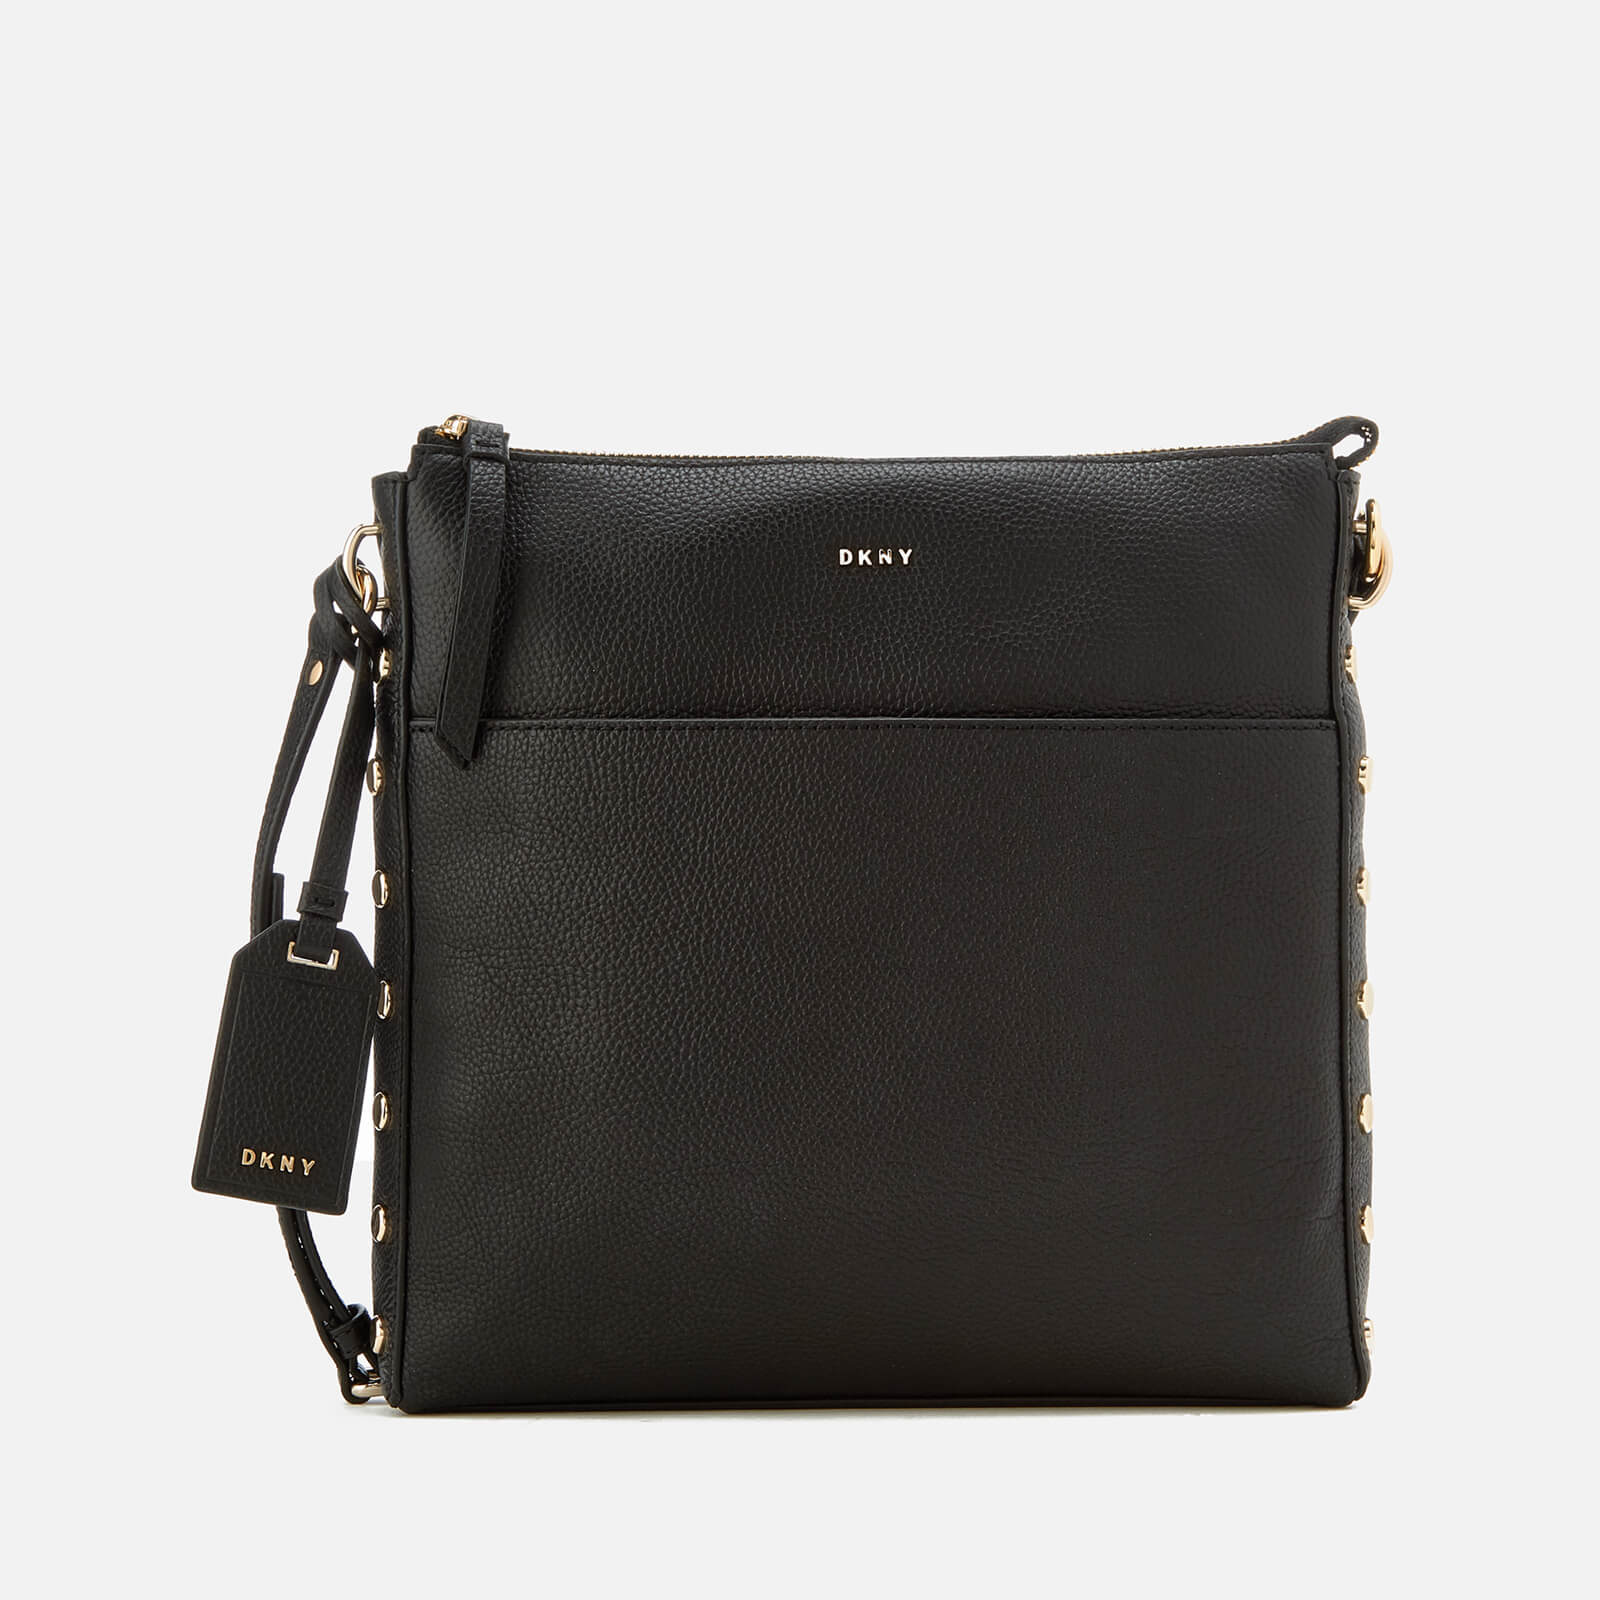 39a71ec32f DKNY Women s Chelsea Pebbled Leather Top Zip Cross Body Bag - Black ...